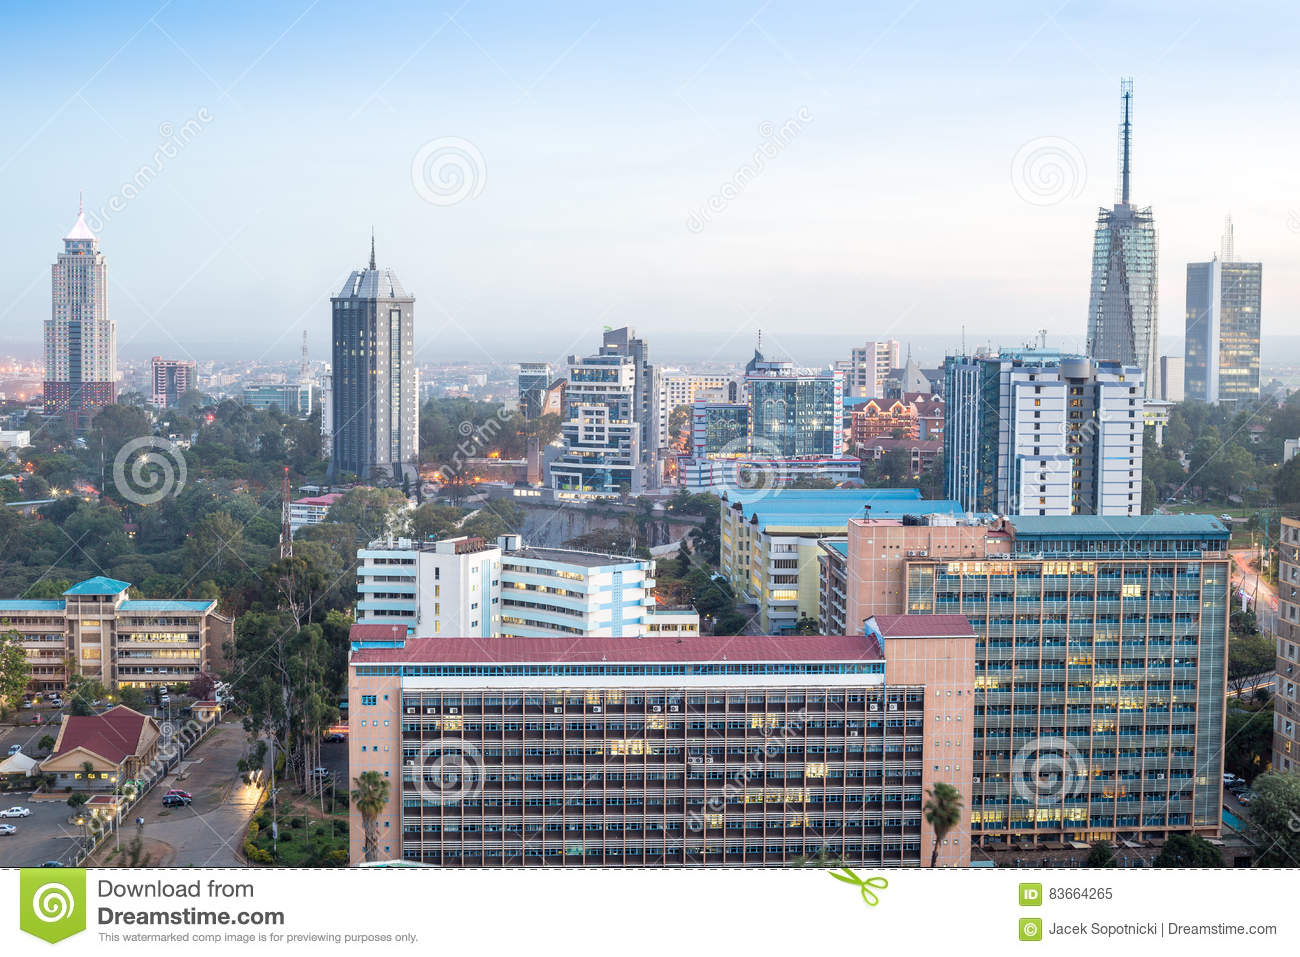 a geographical overview of nairobi the capital of kenya Nairobi map - explore map of nairobi, the largest city and the capital of kenya to view the railway lines, major roads, airports, tourist places, hotels and more.